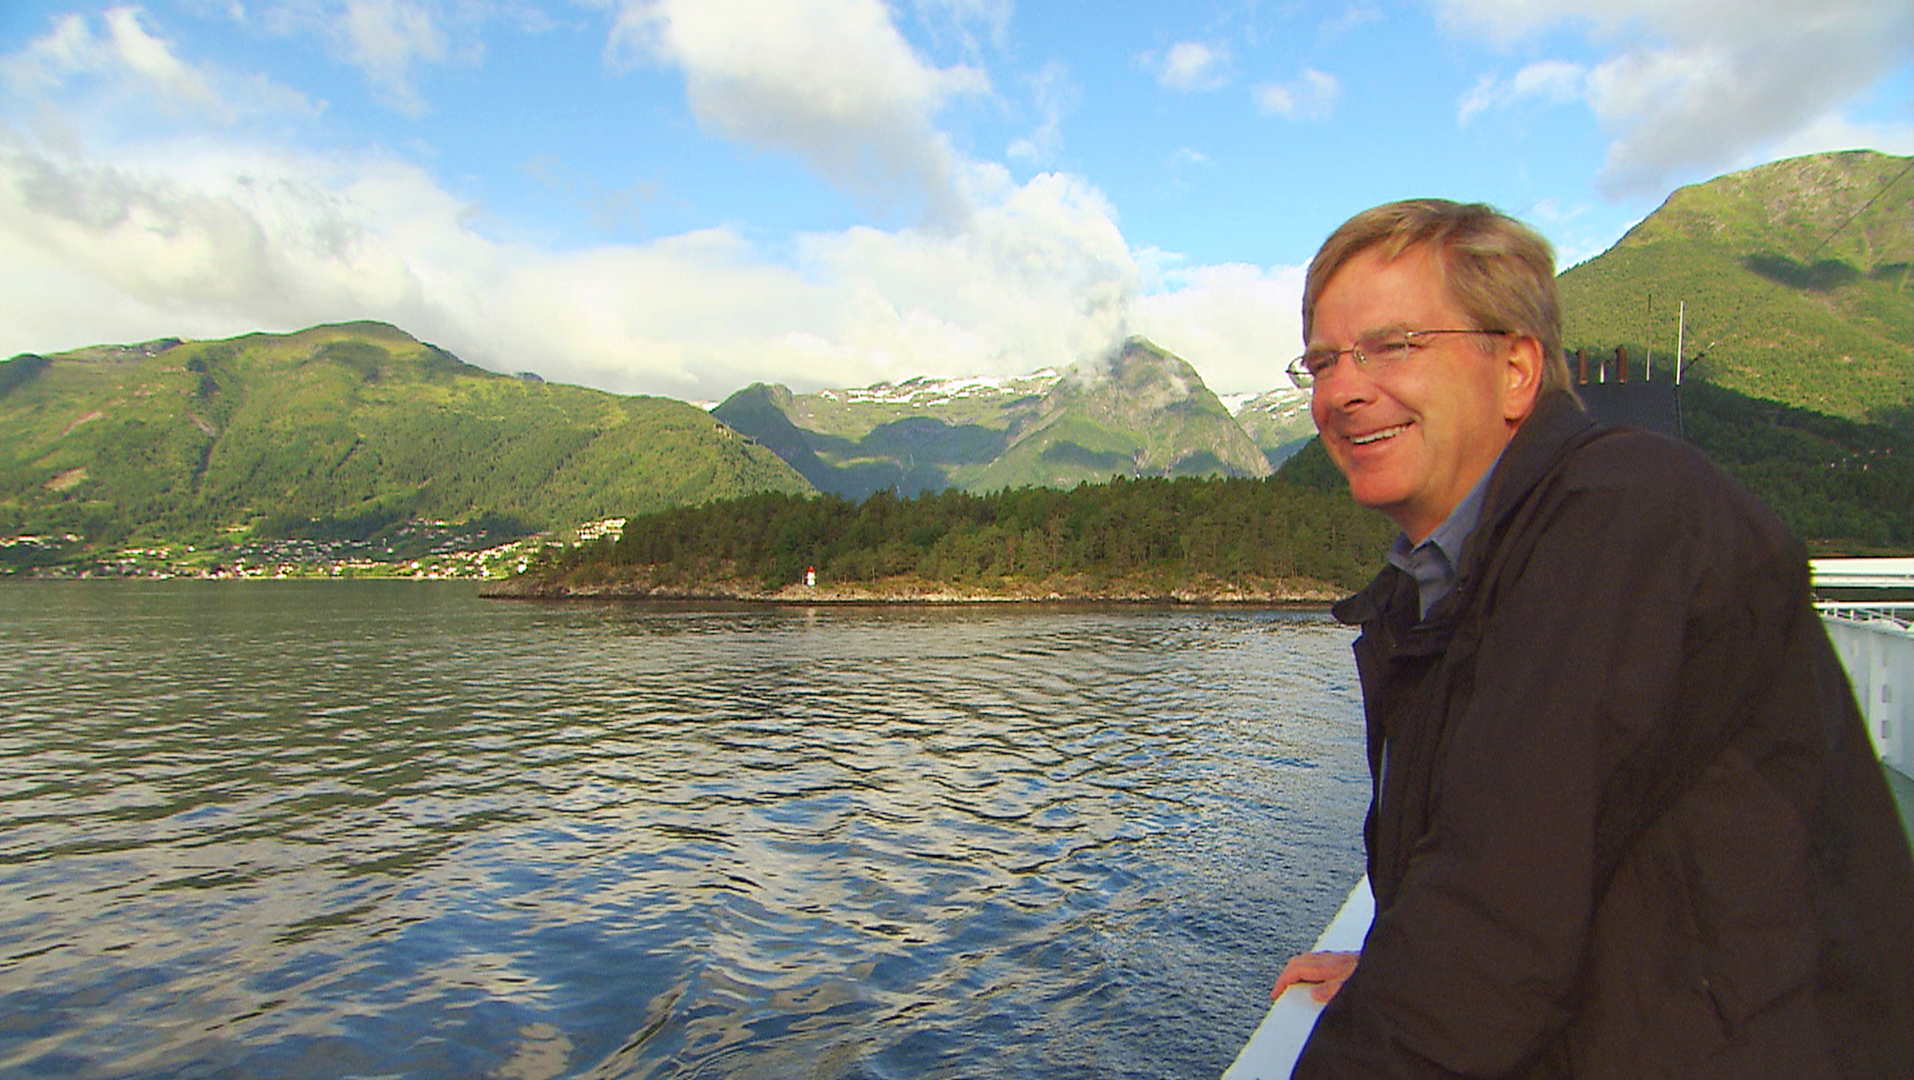 Preview season six of Rick Steves' Europe